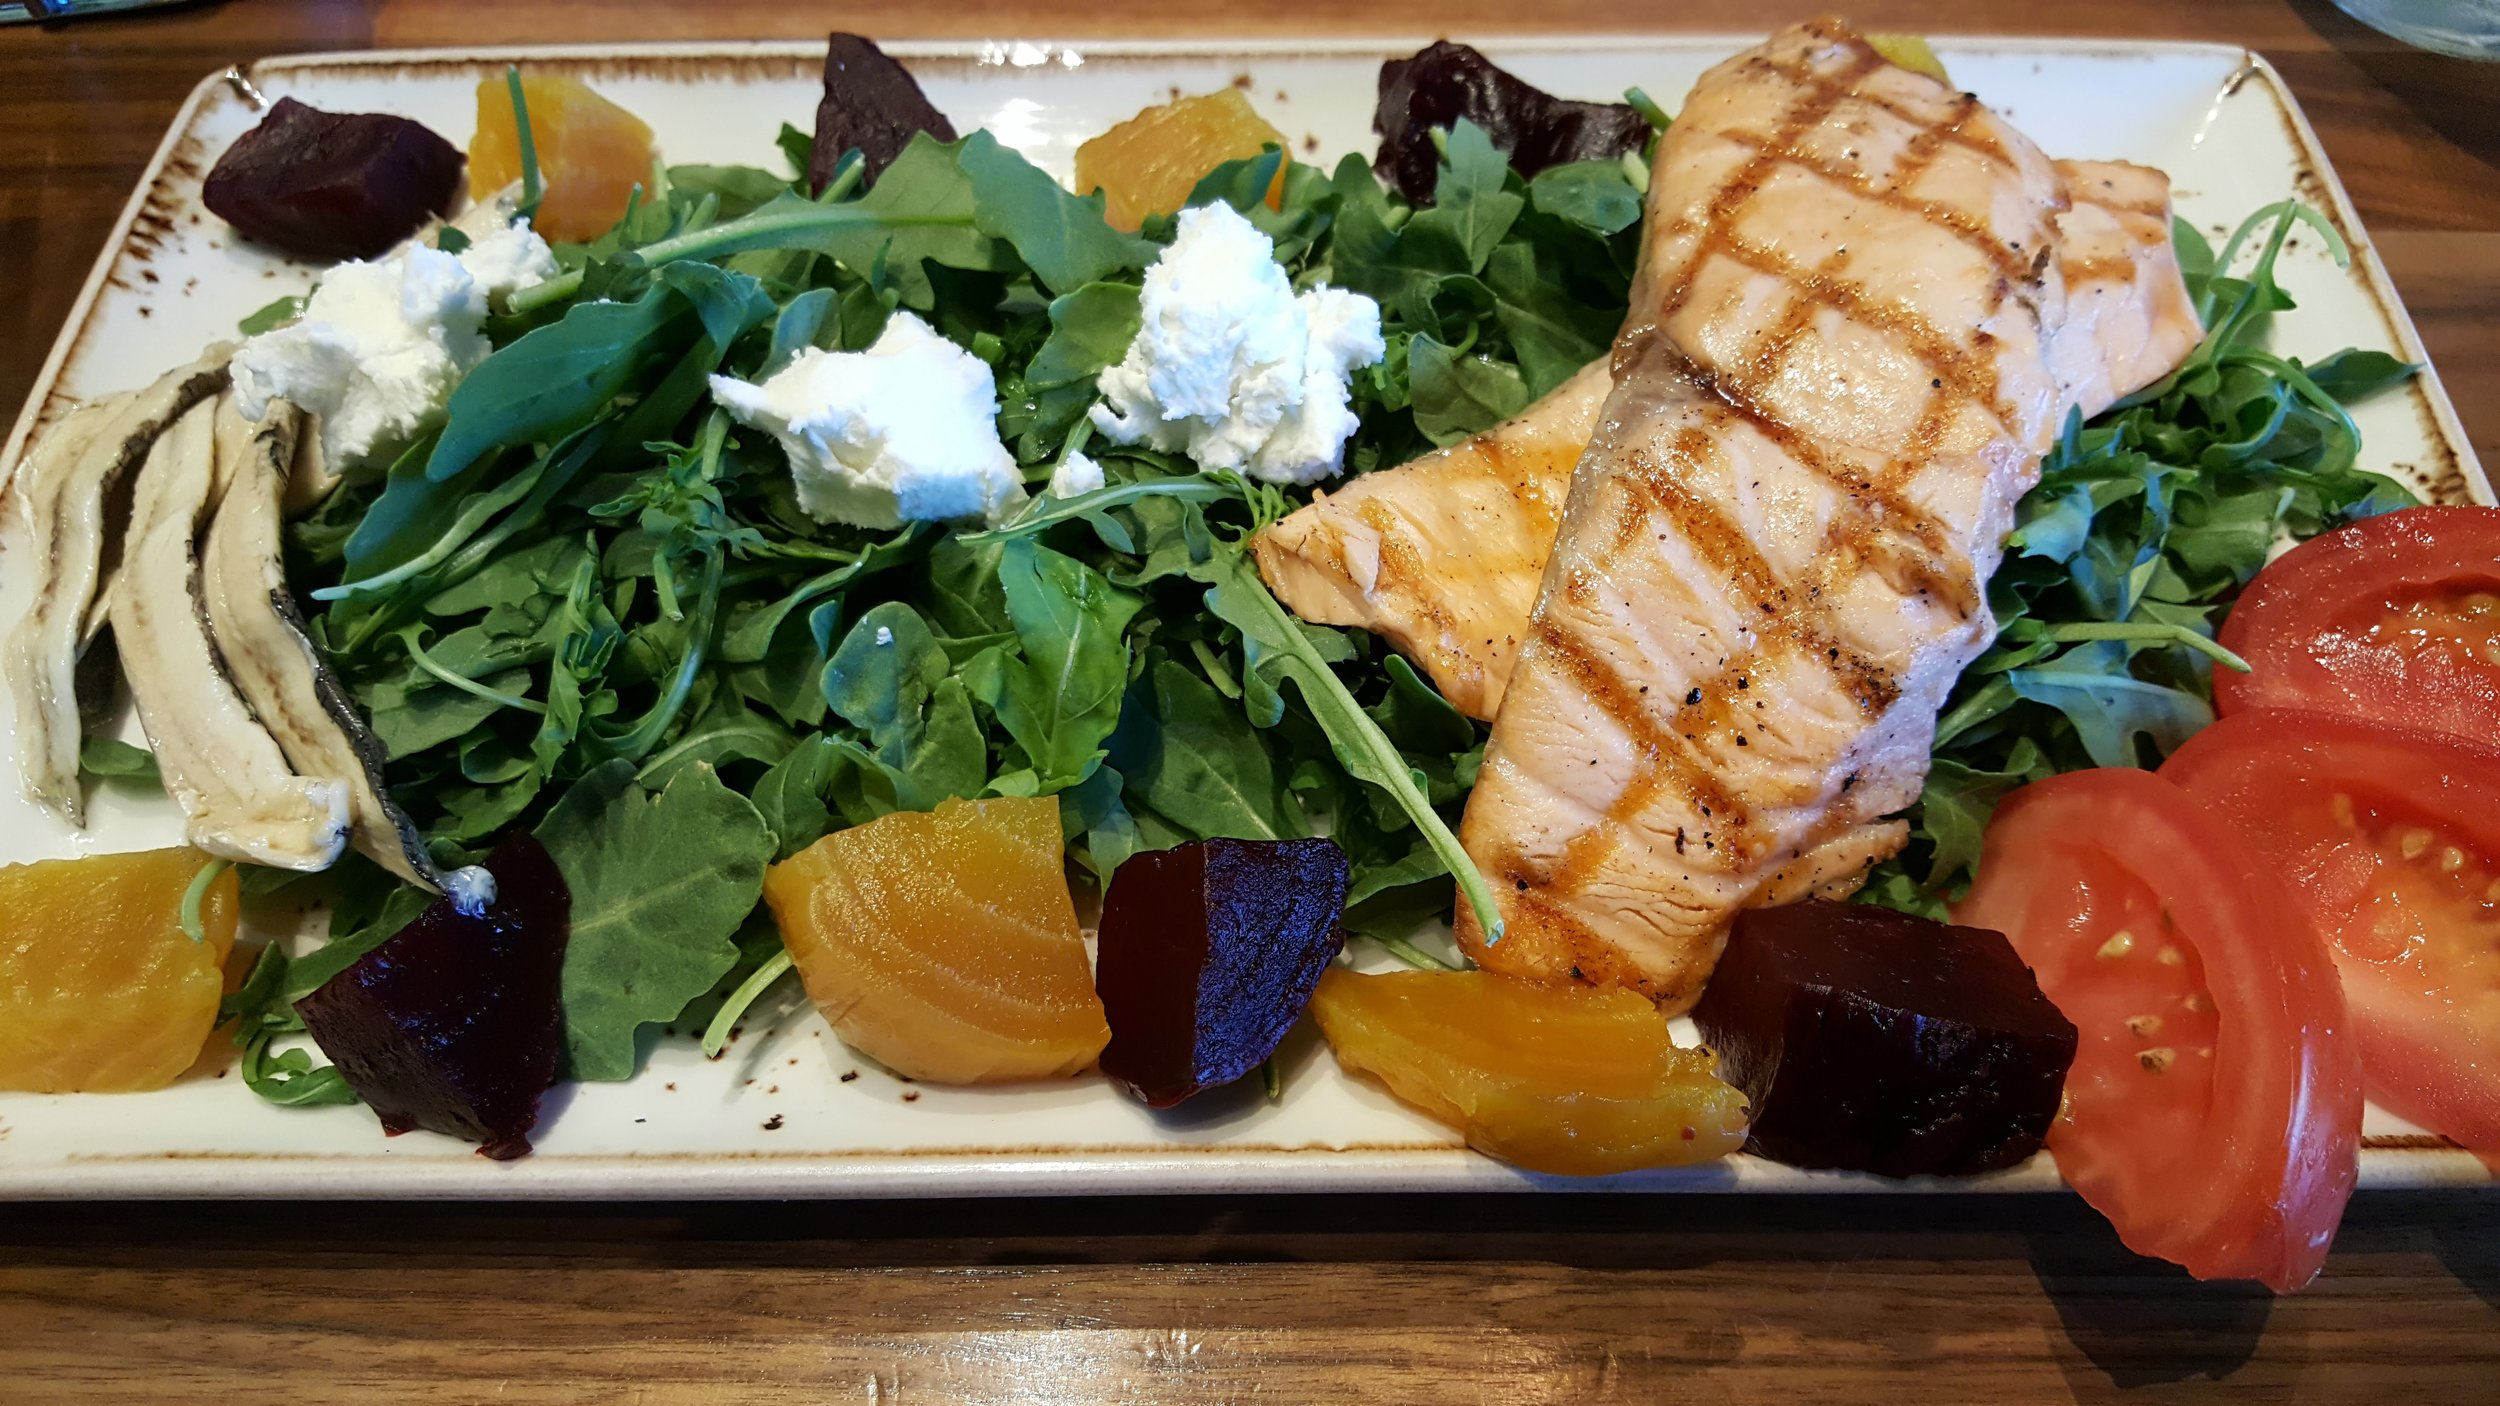 Carson's American Kitchen serves up healthy salads